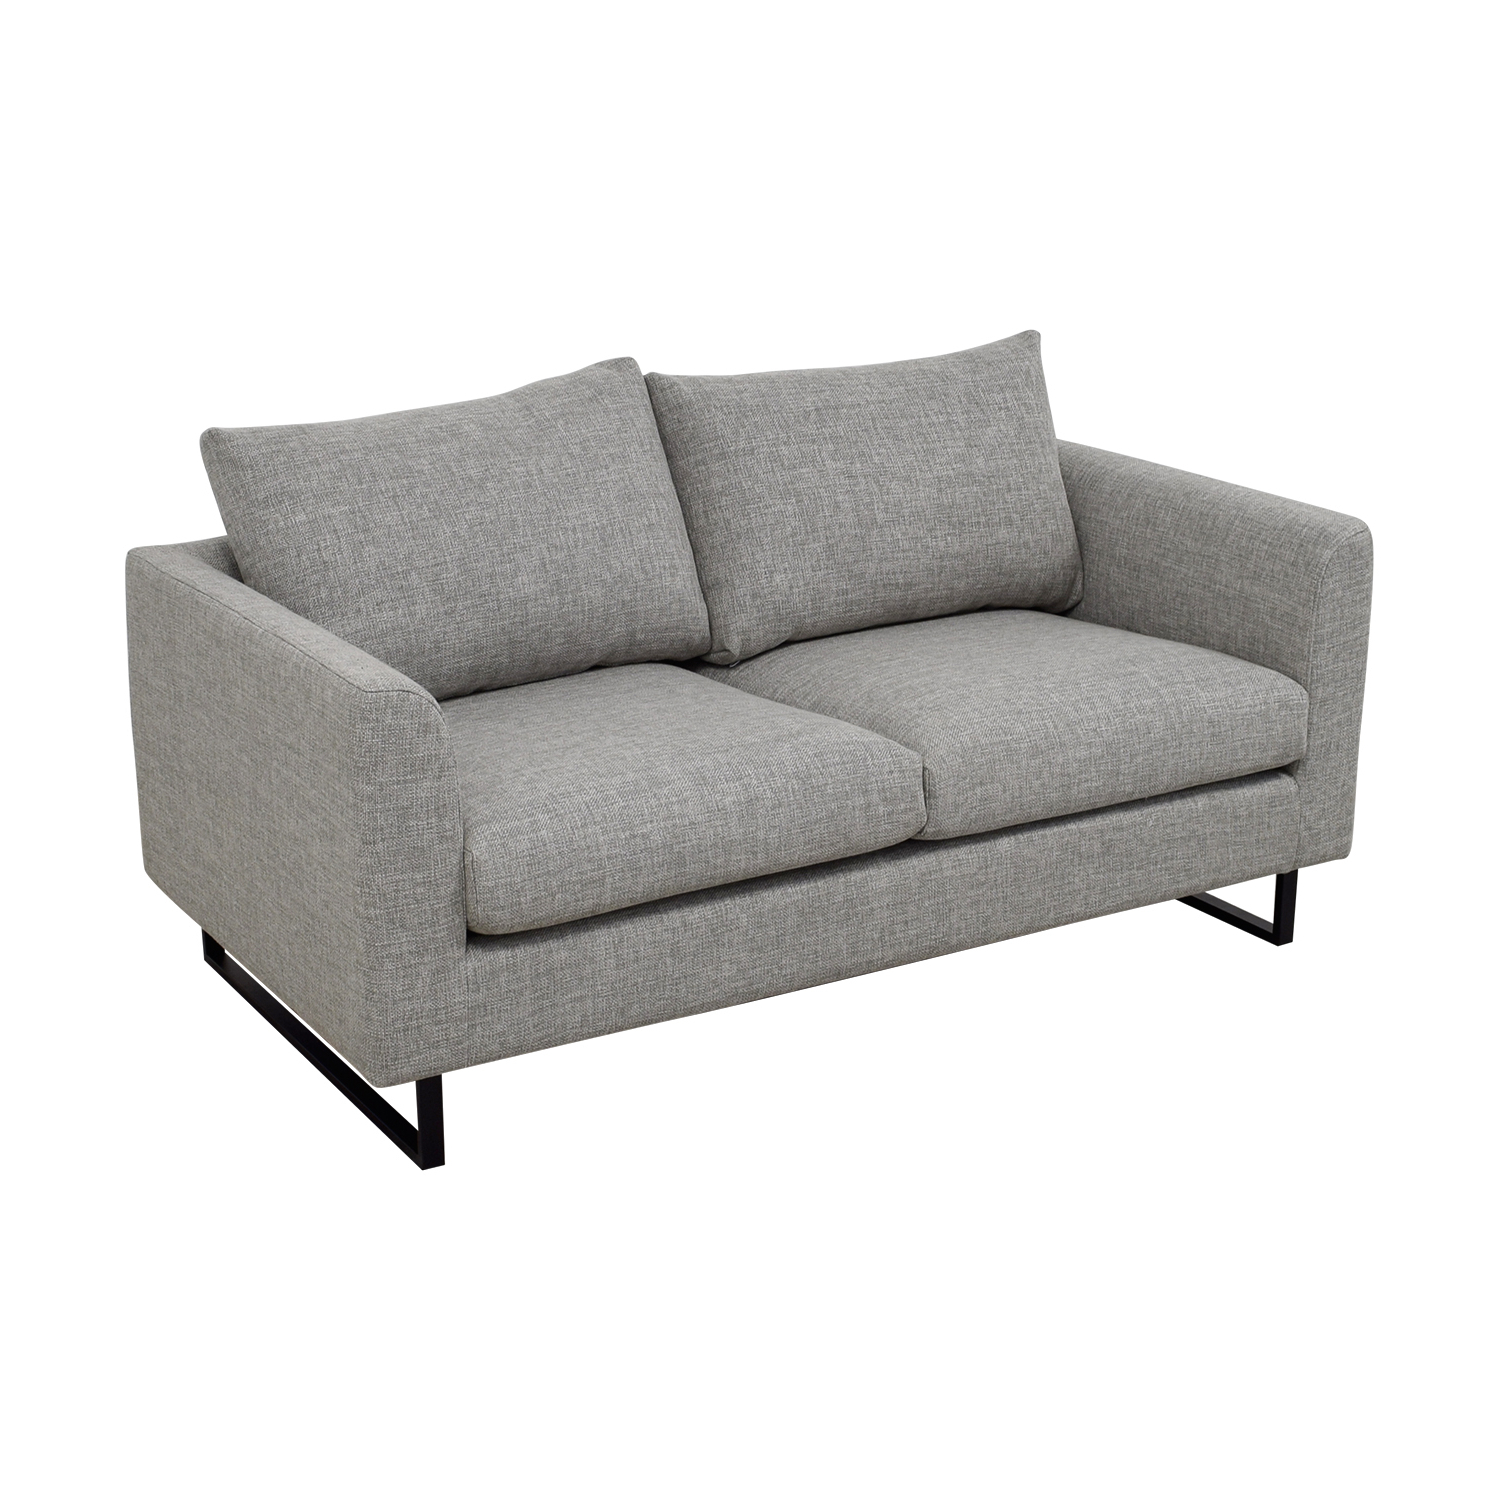 [%63% Off – Owens Gray Loveseat / Sofas For Most Current Owens Loveseats With Cushion|owens Loveseats With Cushion Inside Trendy 63% Off – Owens Gray Loveseat / Sofas|famous Owens Loveseats With Cushion In 63% Off – Owens Gray Loveseat / Sofas|2020 63% Off – Owens Gray Loveseat / Sofas Inside Owens Loveseats With Cushion%] (View 5 of 20)